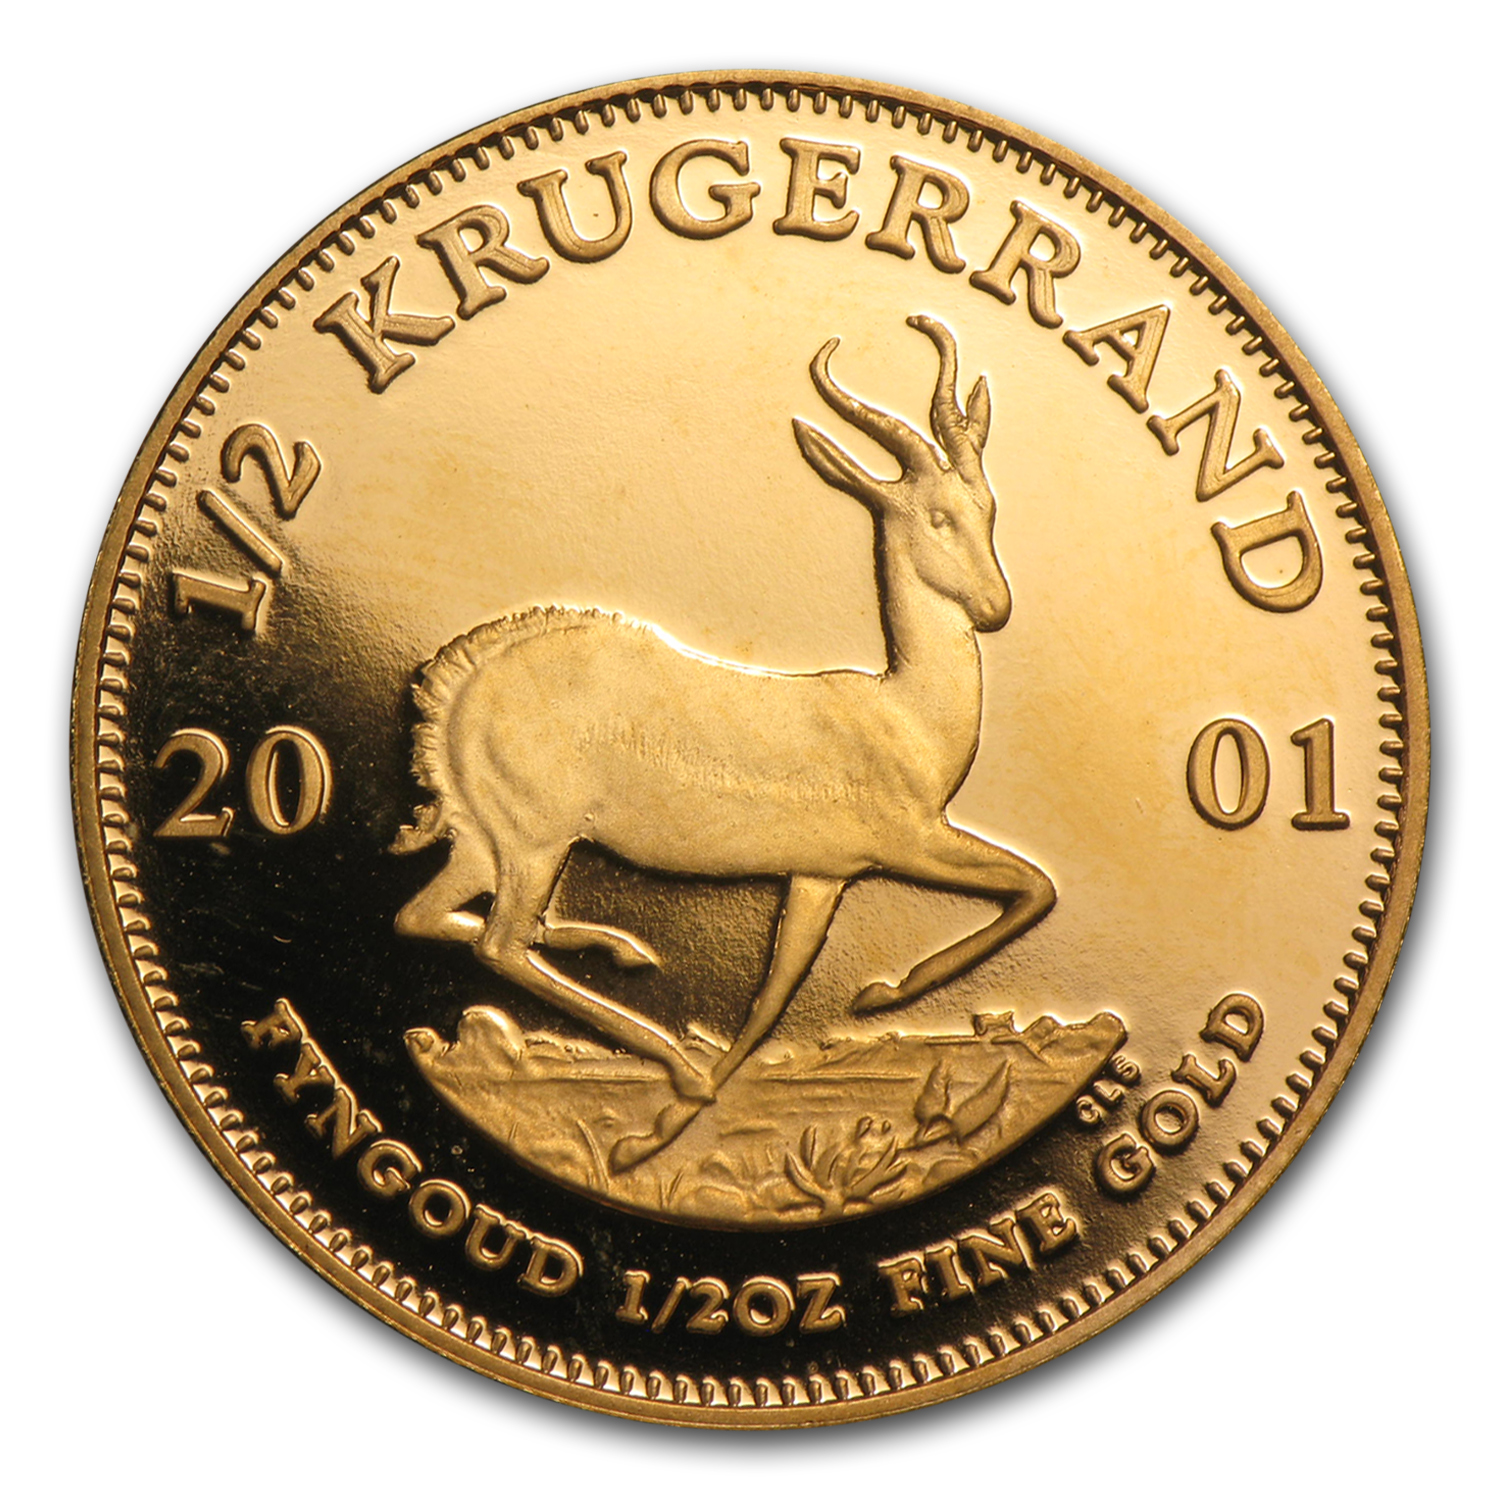 2001 South Africa 1/2 oz Proof Gold Krugerrand